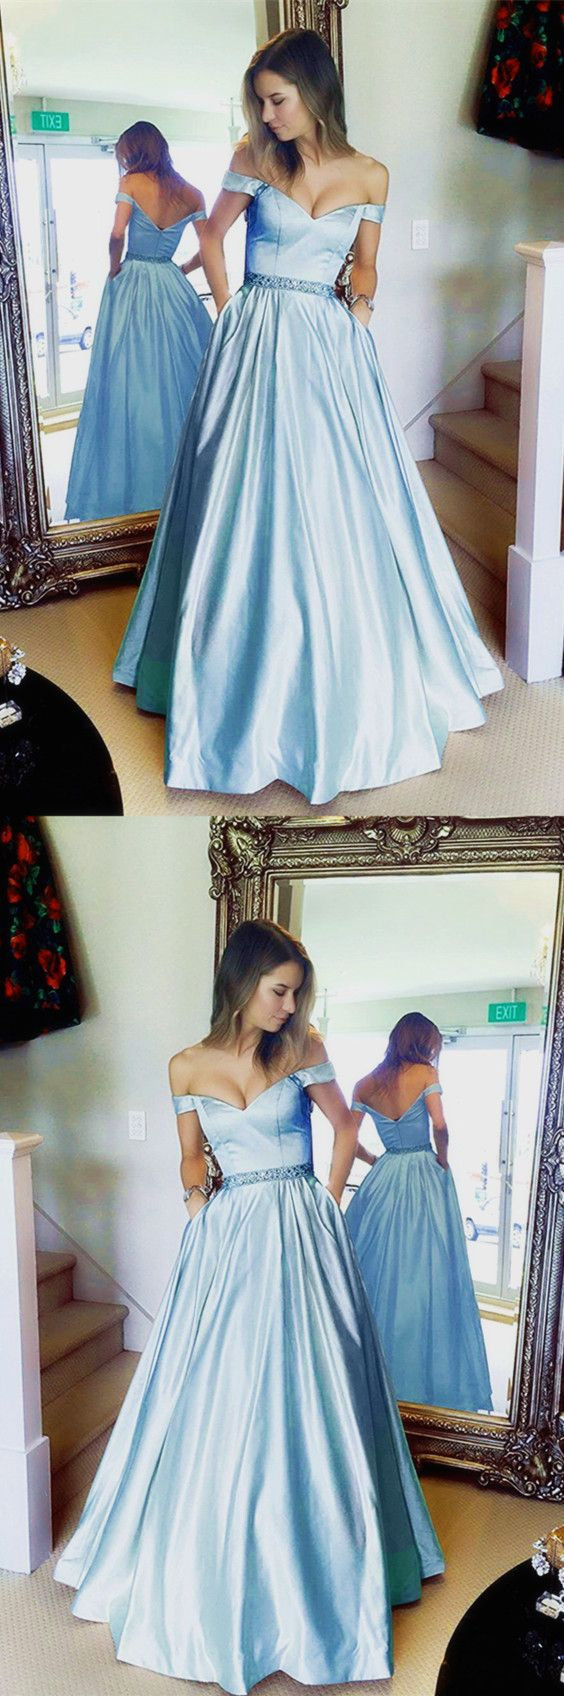 6152 best prom/homecoming images on Pinterest | Evening gowns ...